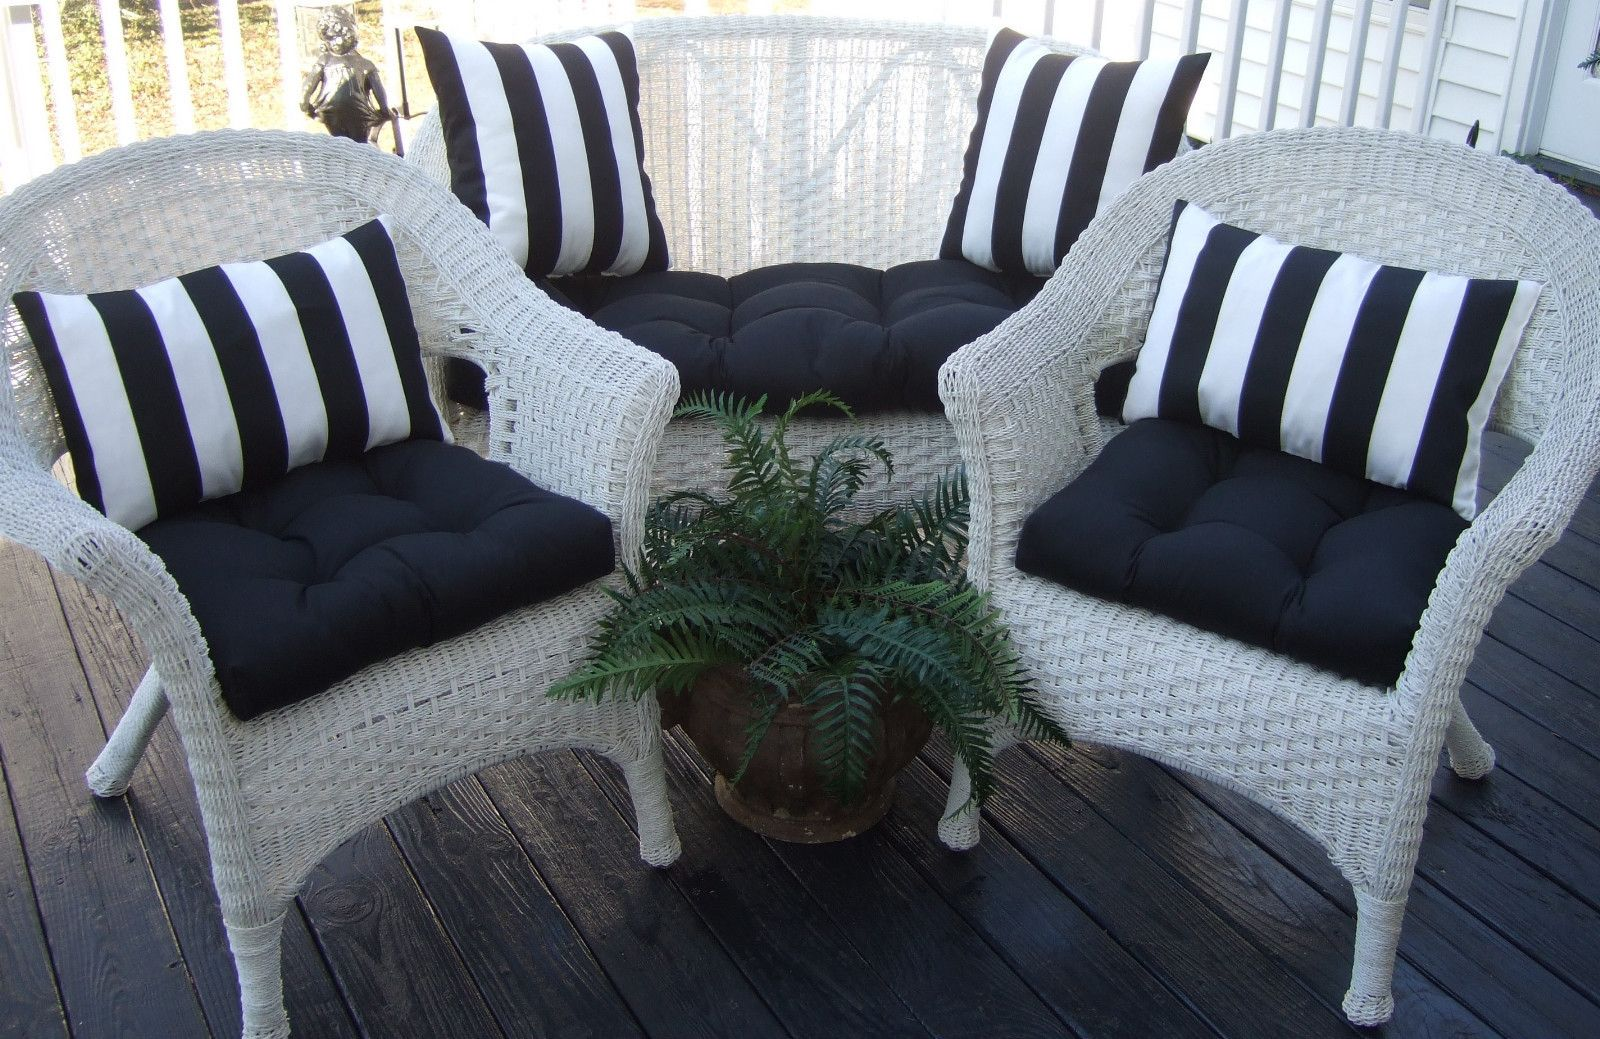 Details about Outdoor Wicker Cushions & Pillows 7 PC SET ...